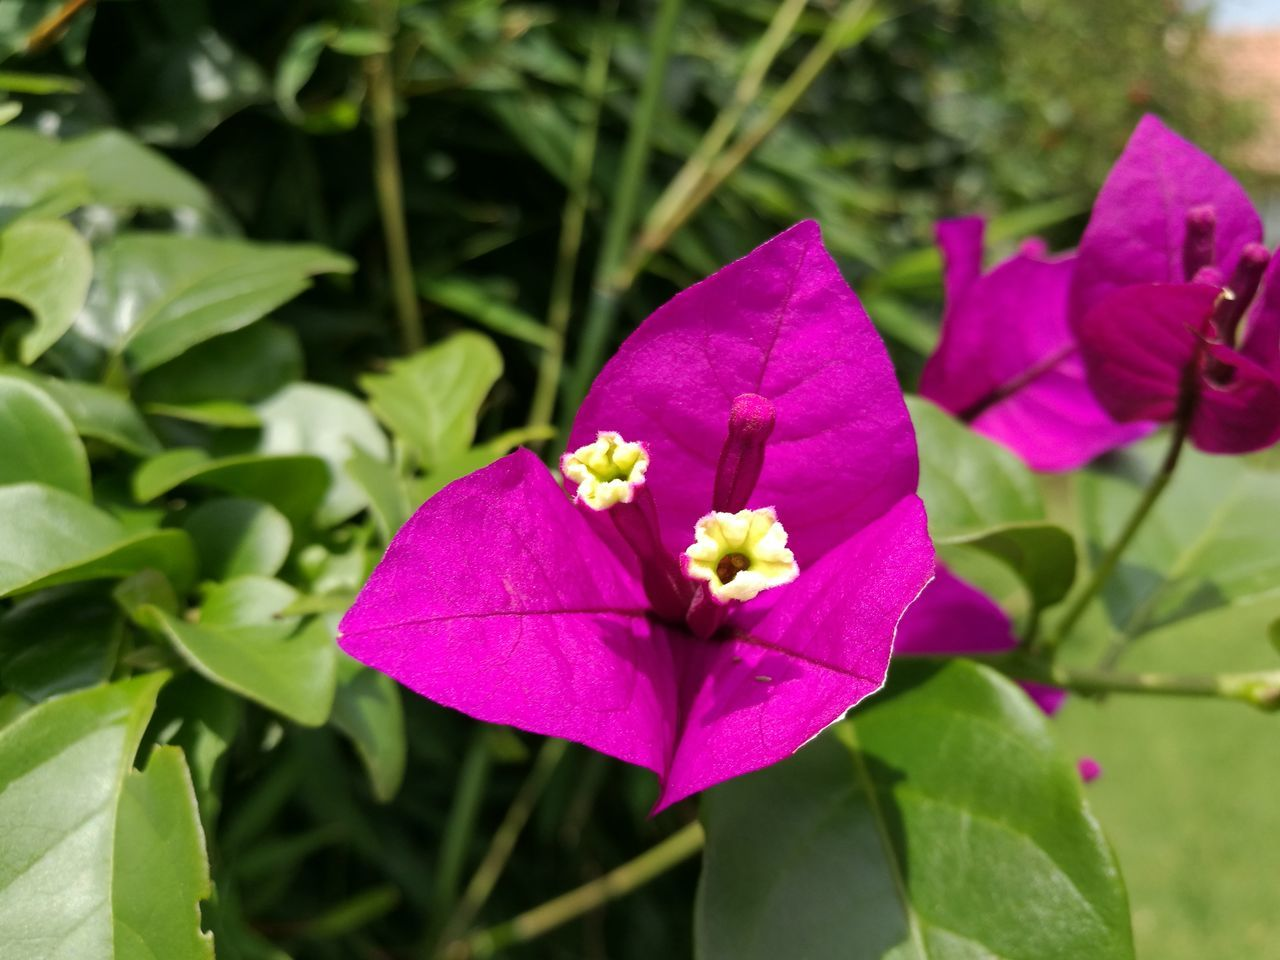 flower, petal, growth, fragility, leaf, beauty in nature, flower head, nature, freshness, close-up, day, no people, plant, focus on foreground, outdoors, blooming, periwinkle